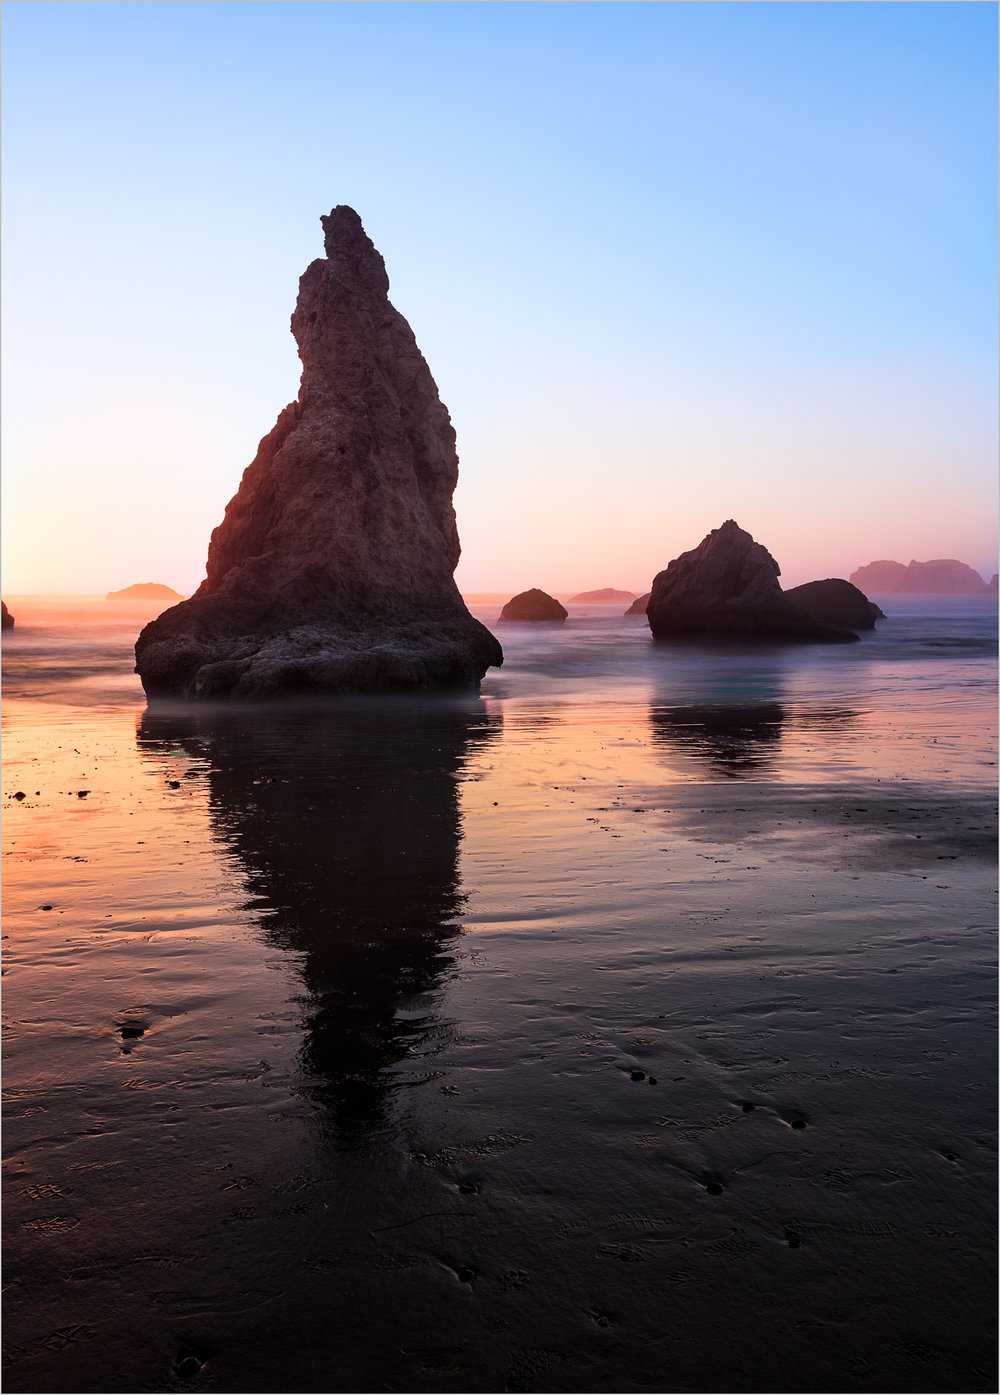 wizards hat bandon oregon.jpg